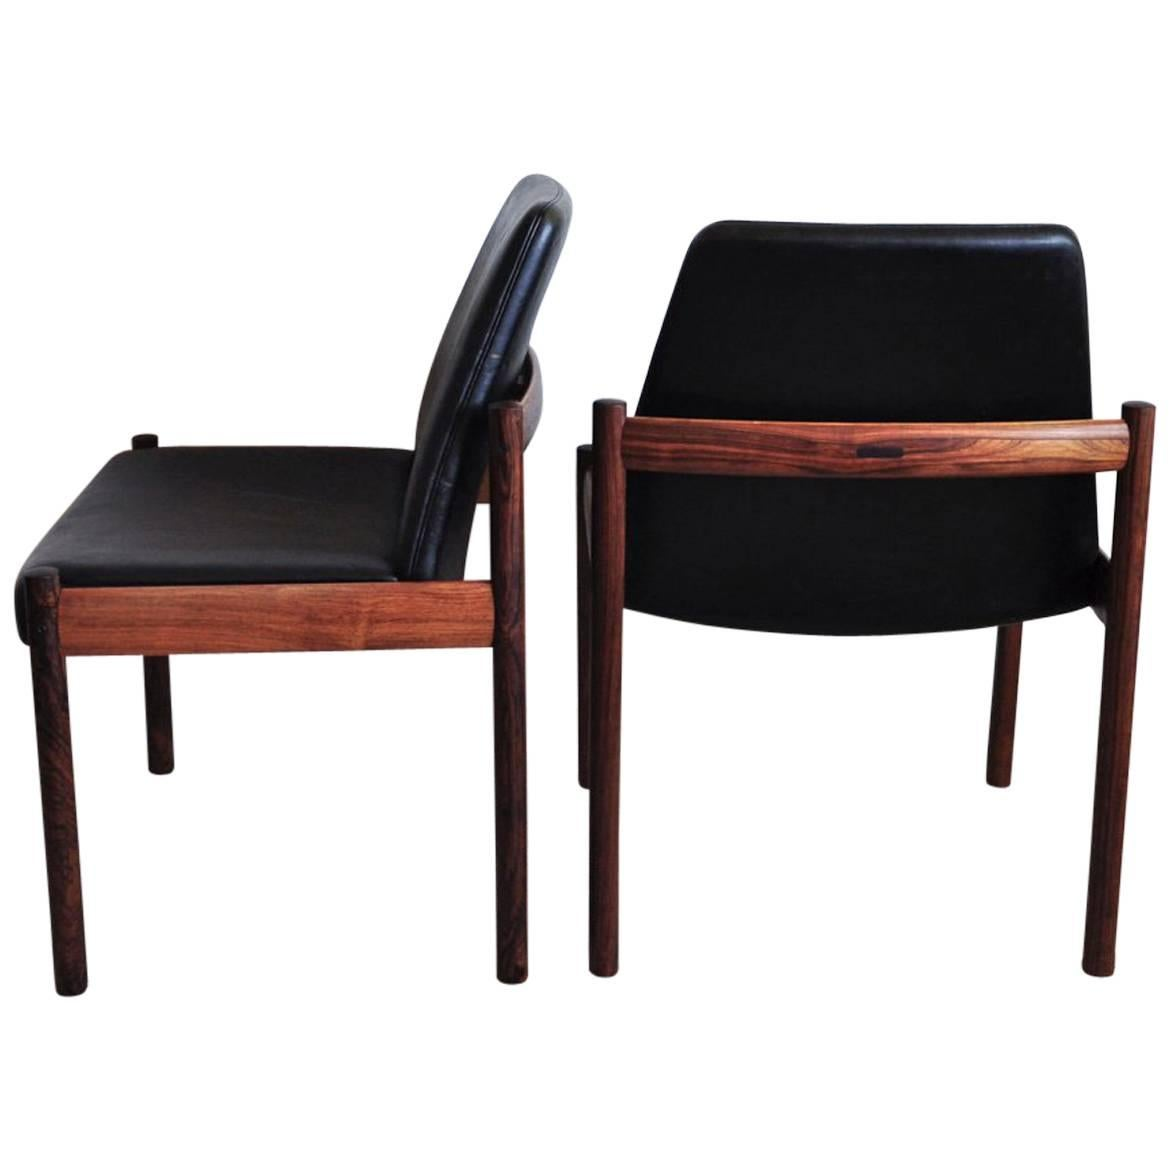 Rosewood and Leather Dining Chair by Sven Ivar Dysthe for Dokka Møbler